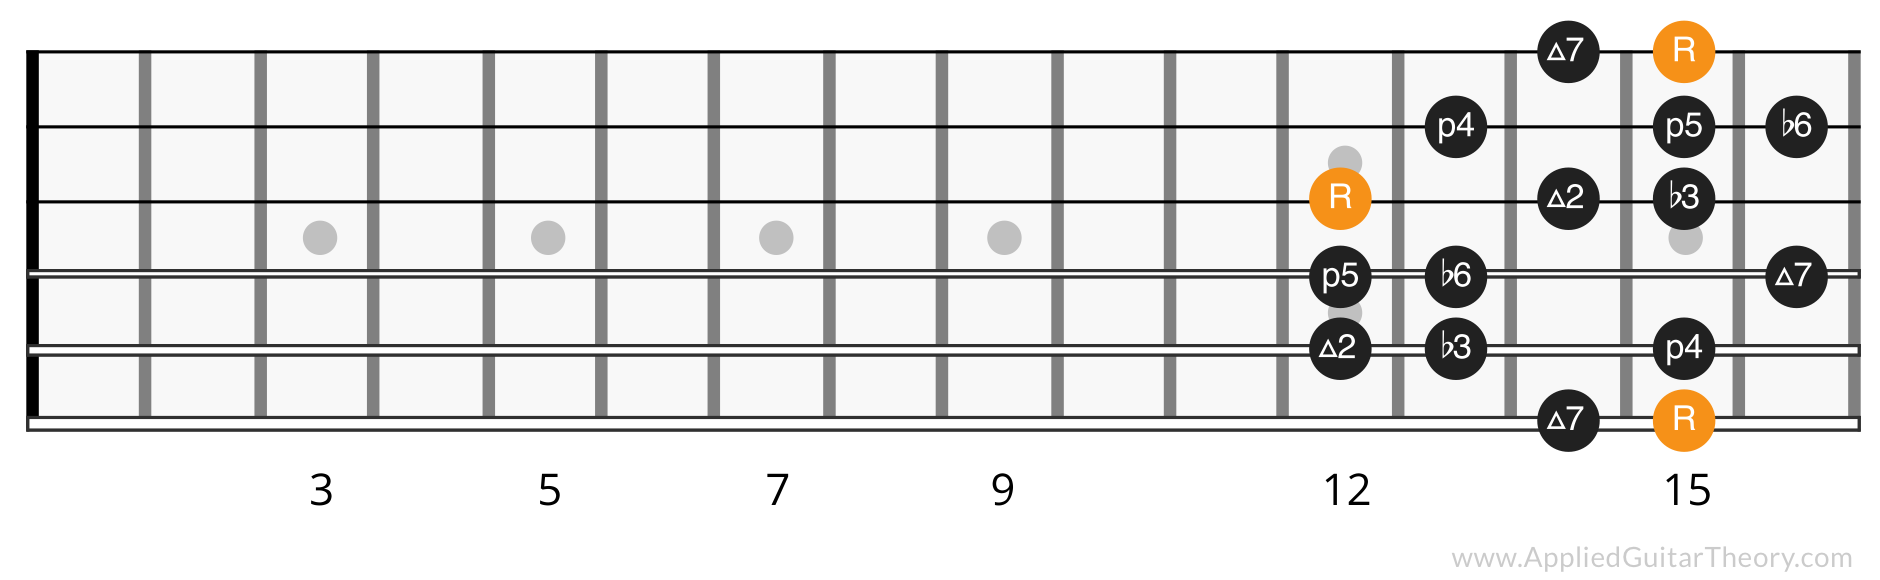 Harmonic minor scale position 5